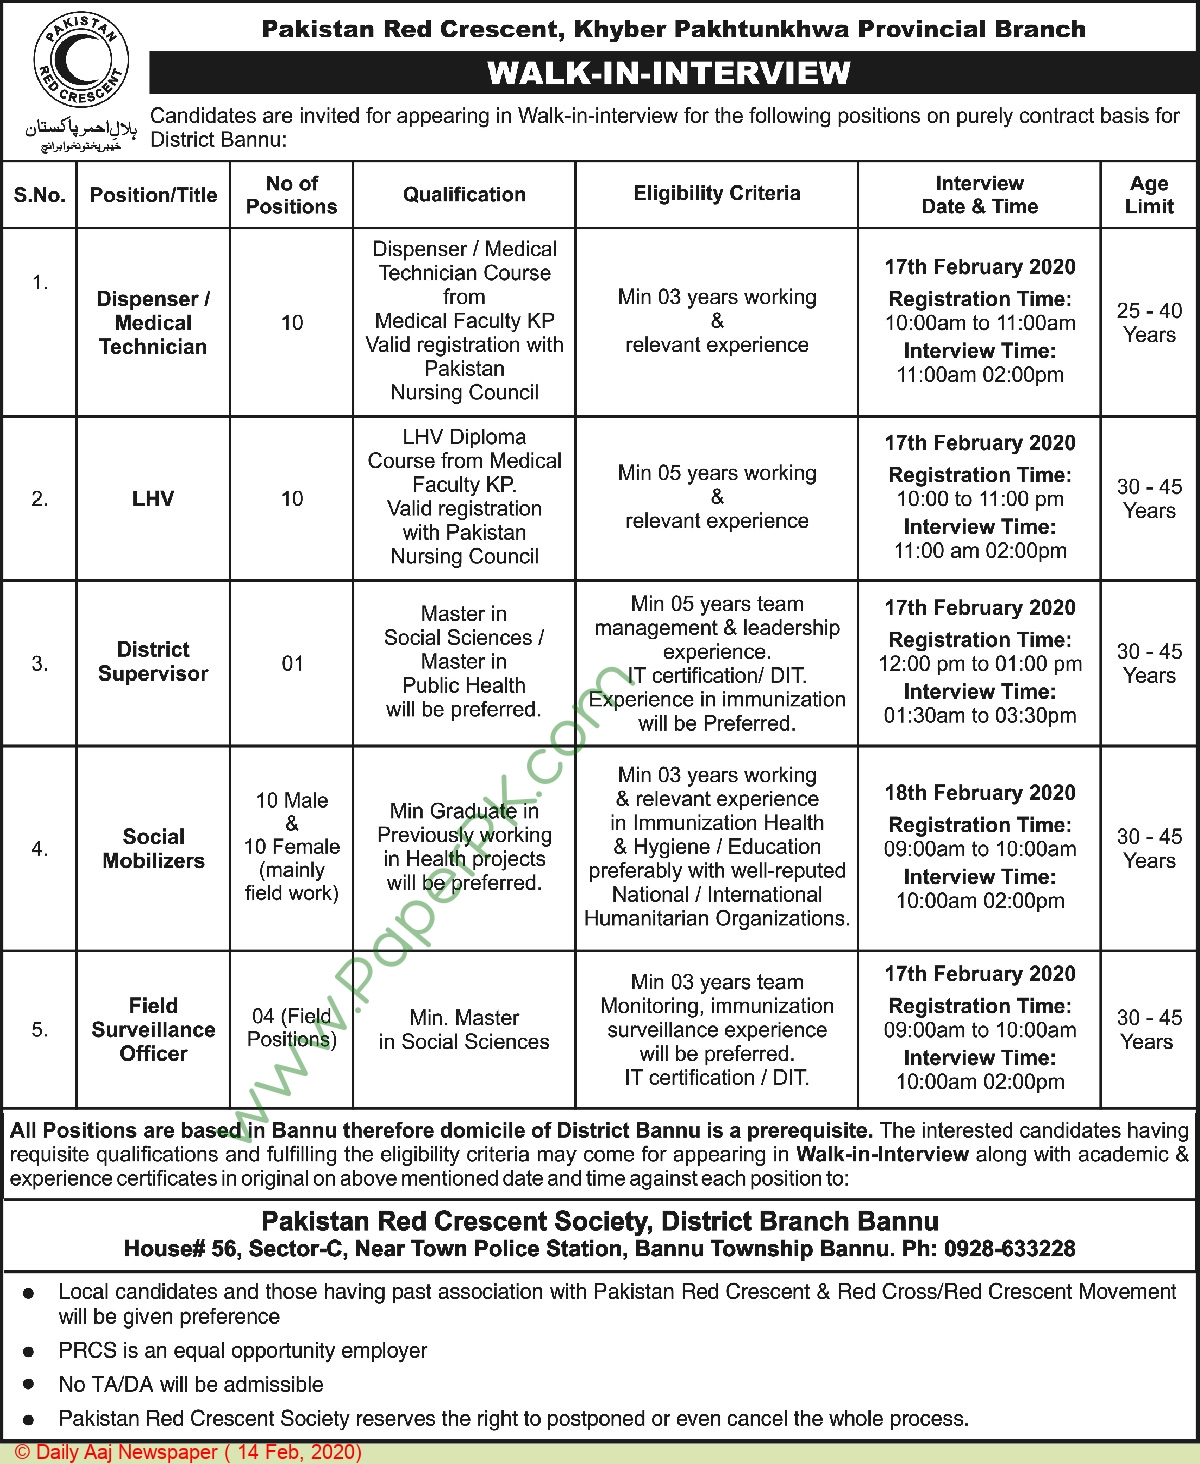 Pakistan Red Crescent Society jobs newspaper ad for Field Surveillance Officer in Bannu